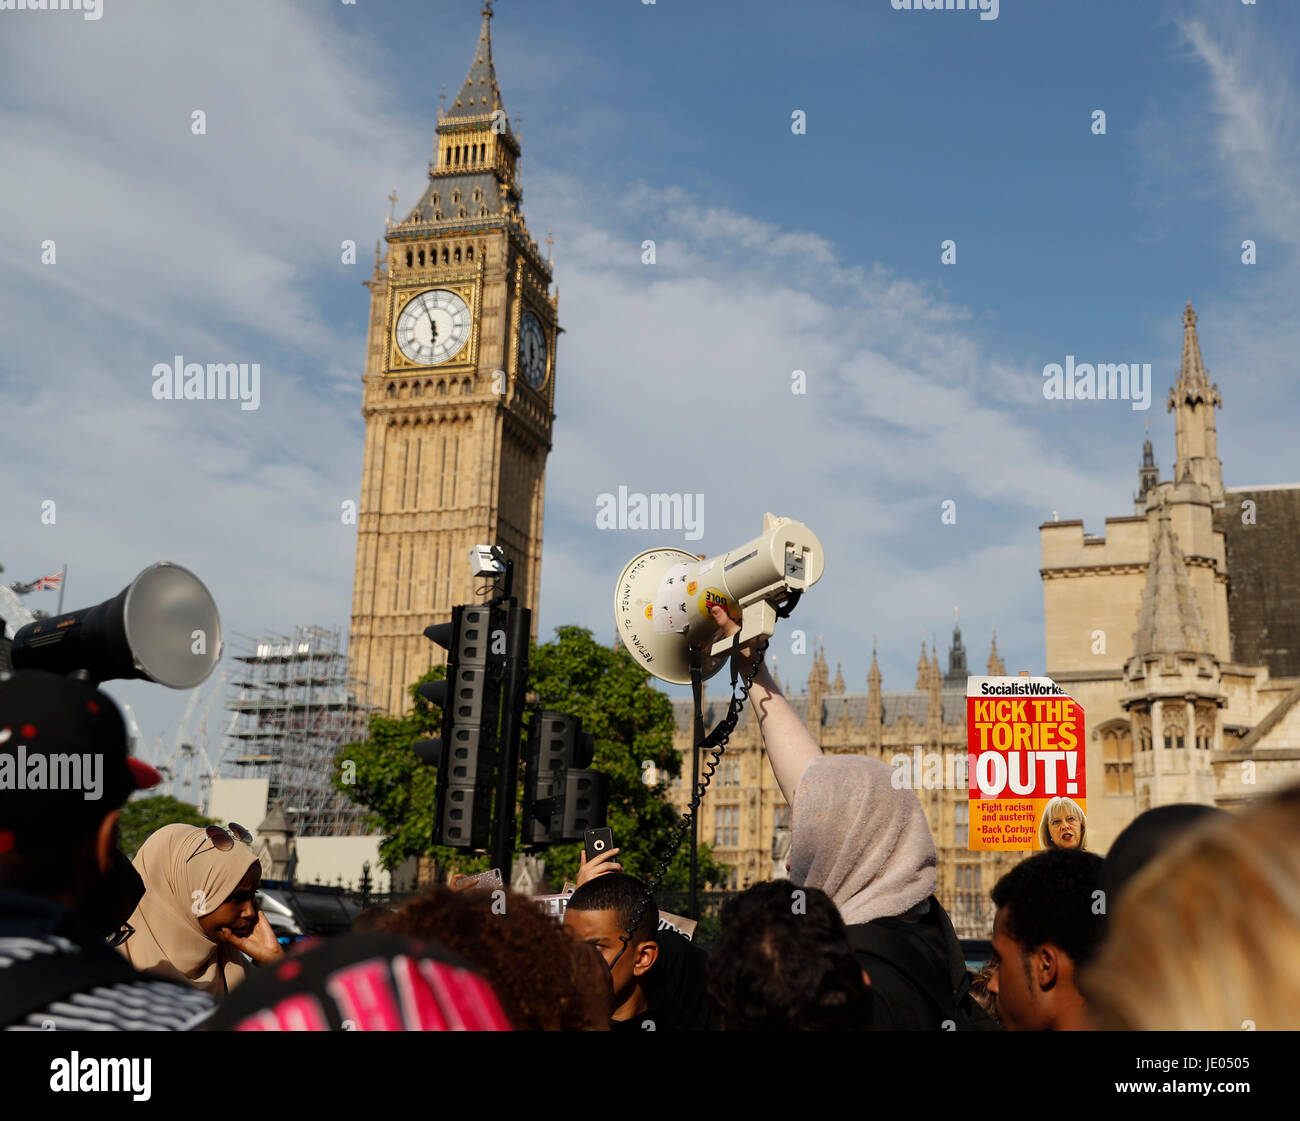 London, UK. 21st June, 2017. People take part in an anti-government protest at the Parliament Square in London, Stock Photo